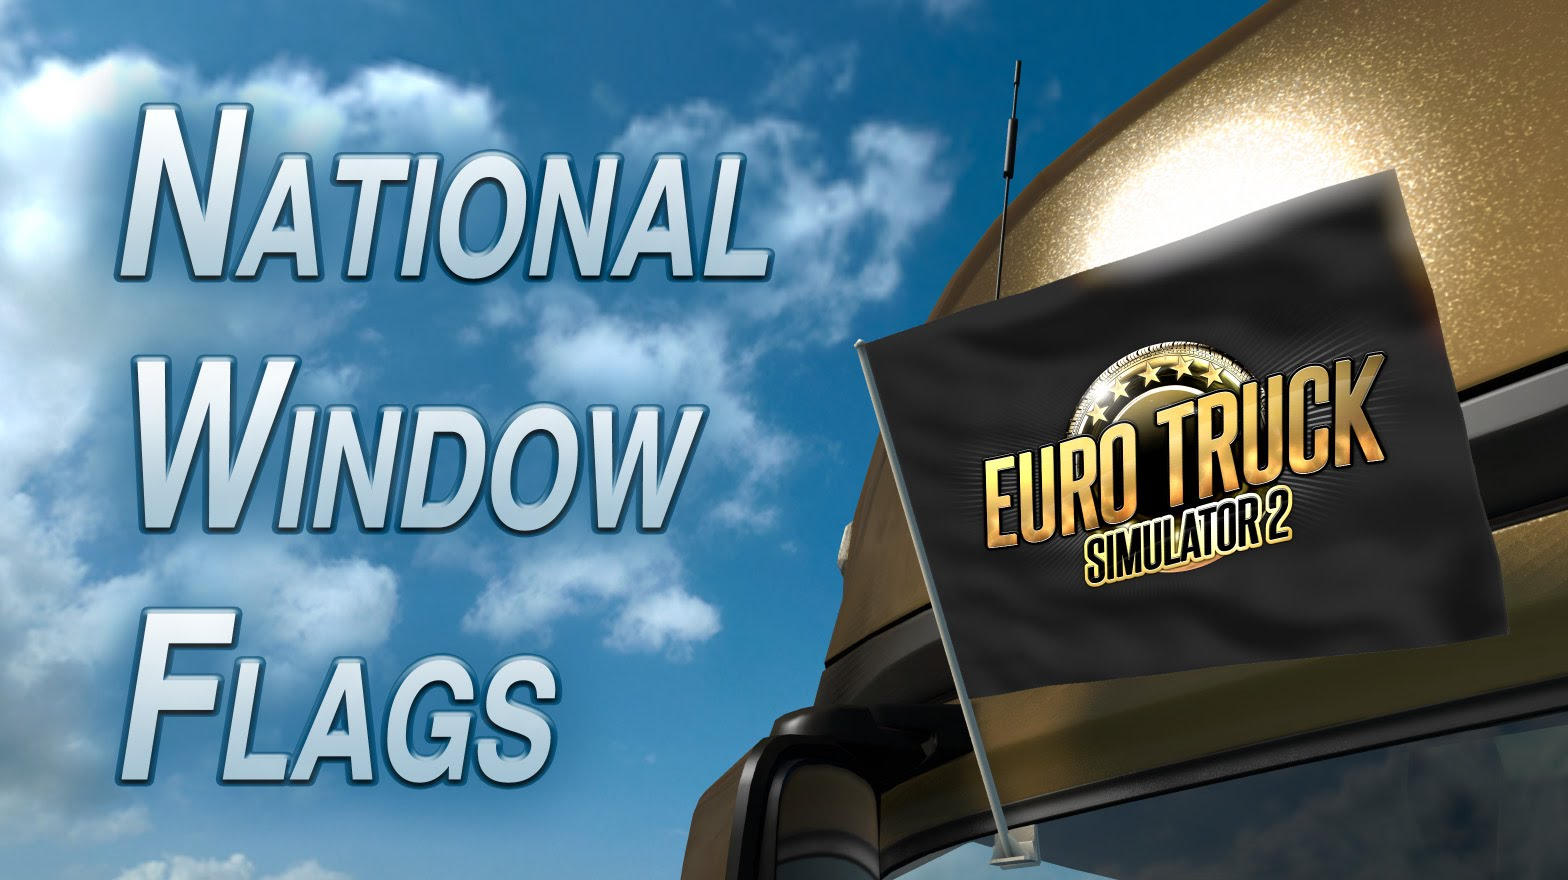 National Window Flags DLC for Euro Truck Simulator 2